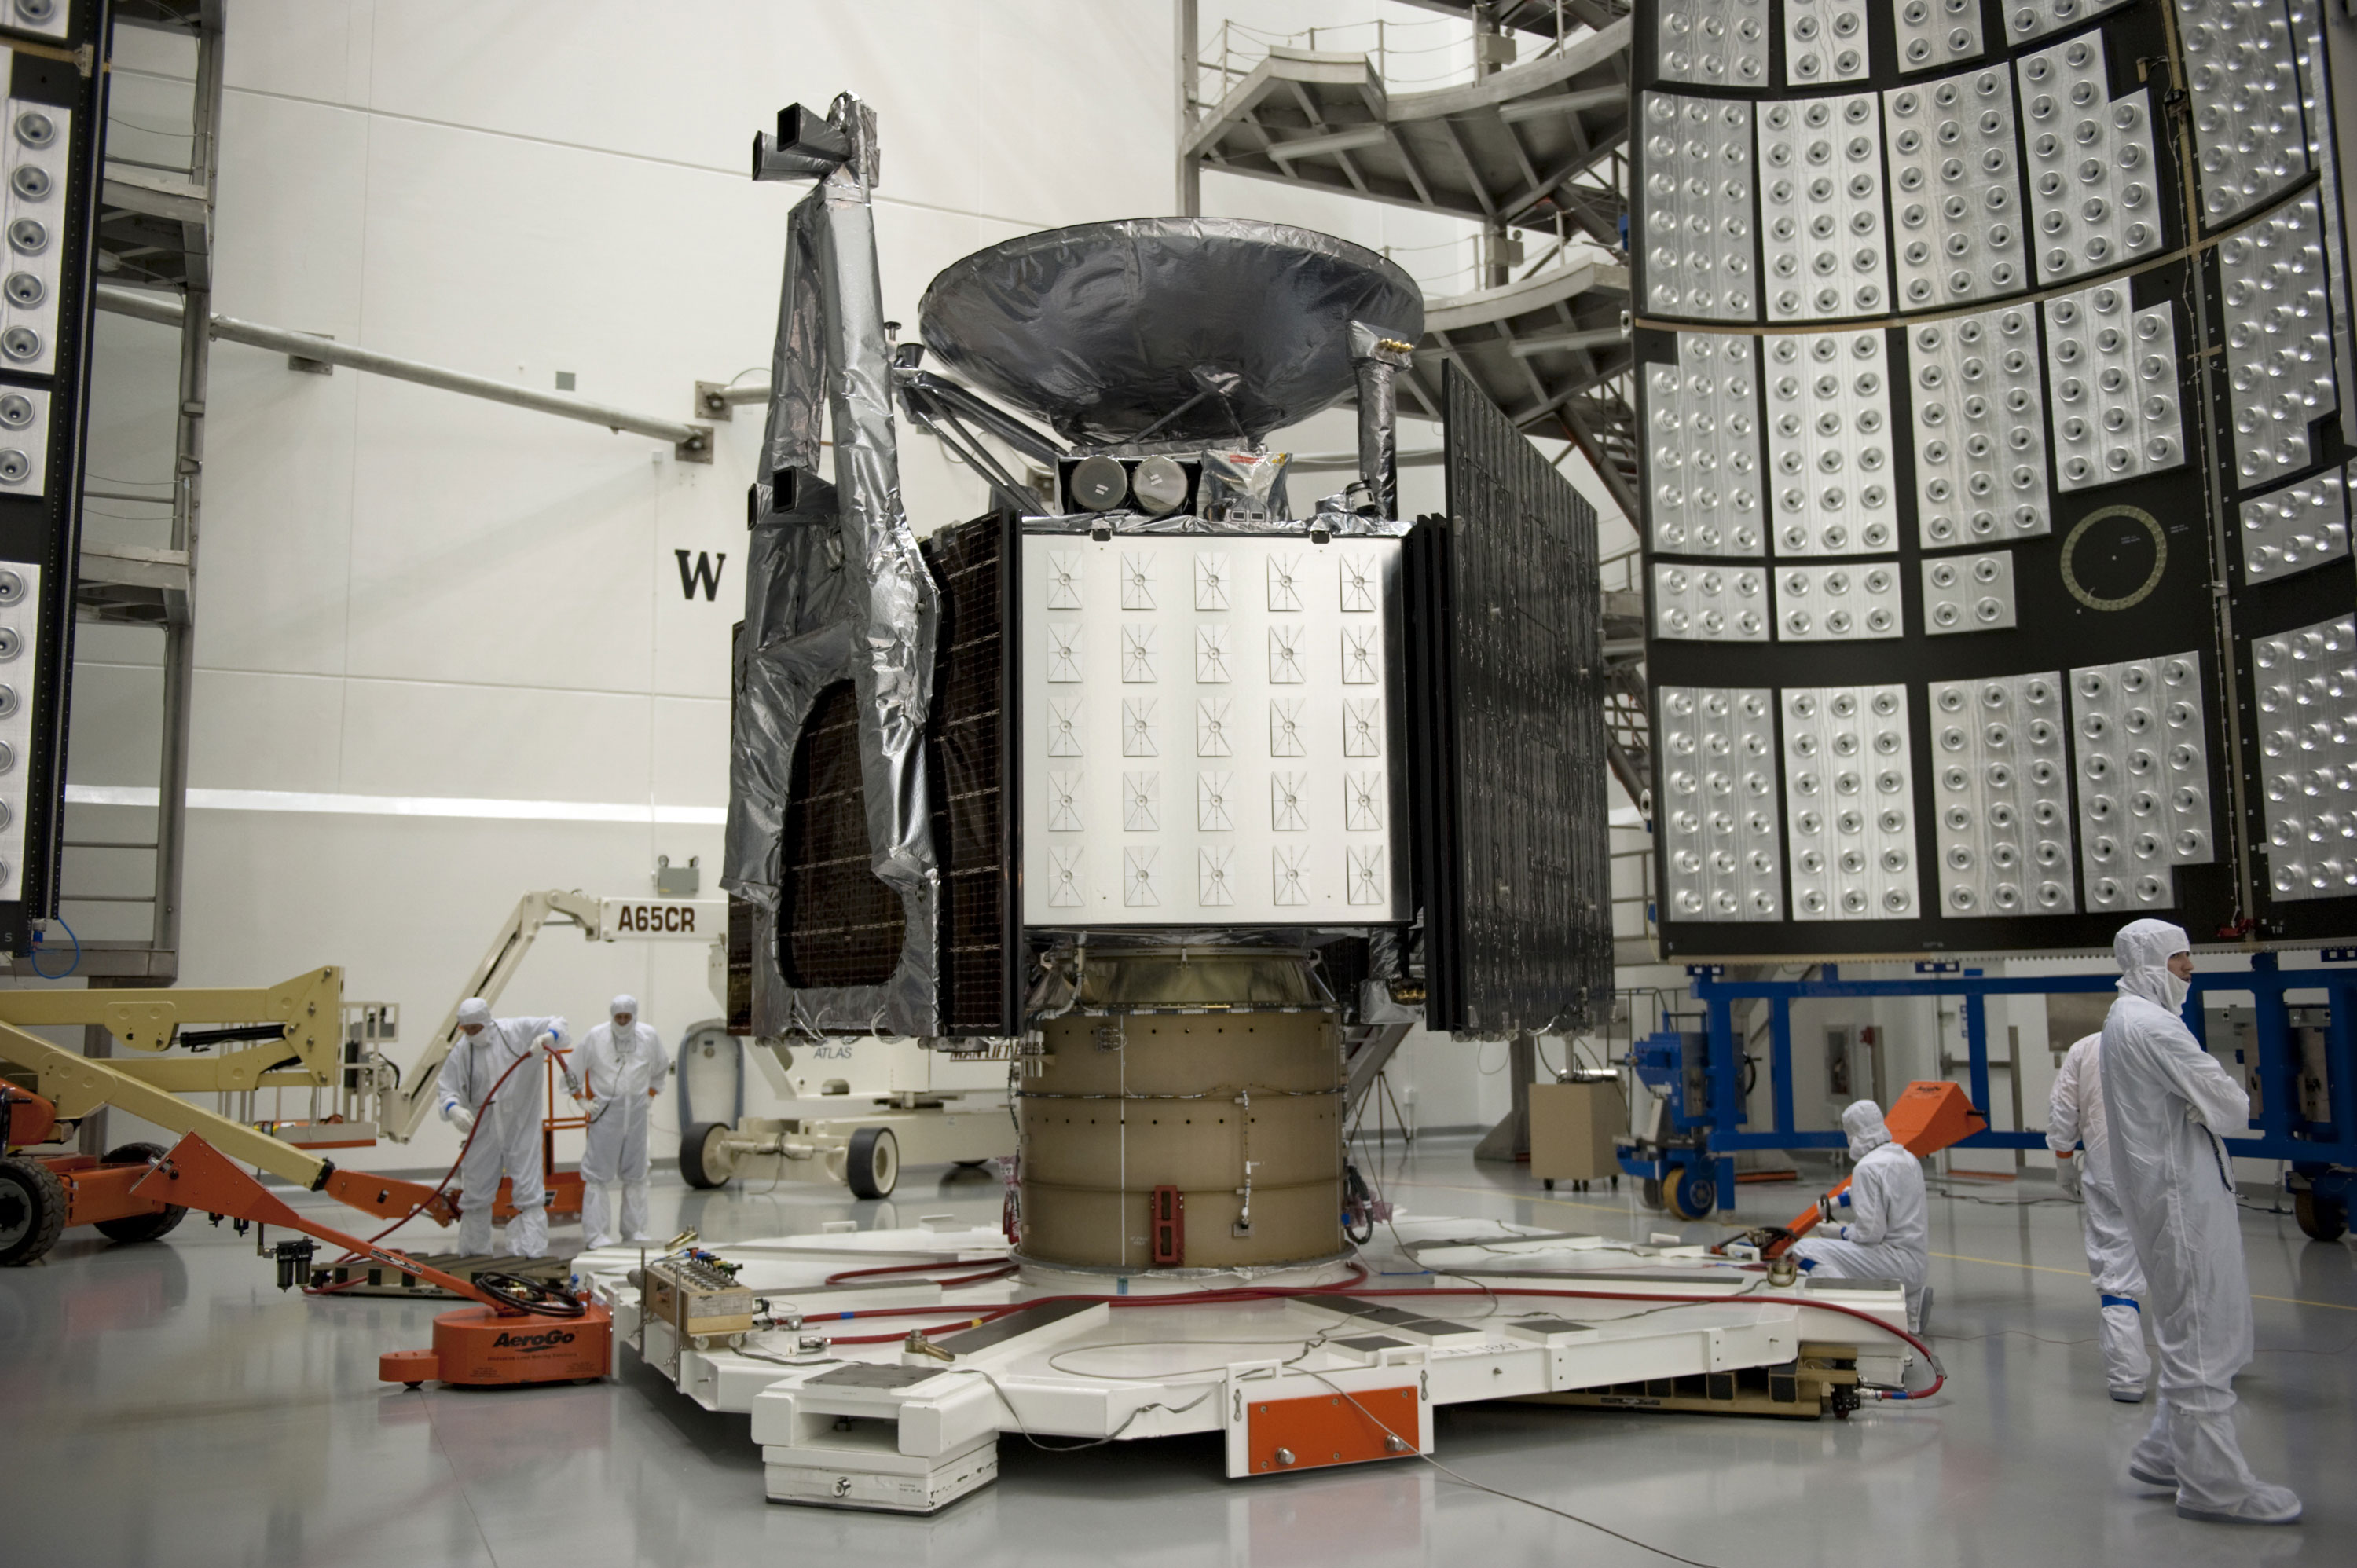 The largest of Juno's six MWR antennas (shown here) takes up a full side of the spacecraft. Credit: NASA